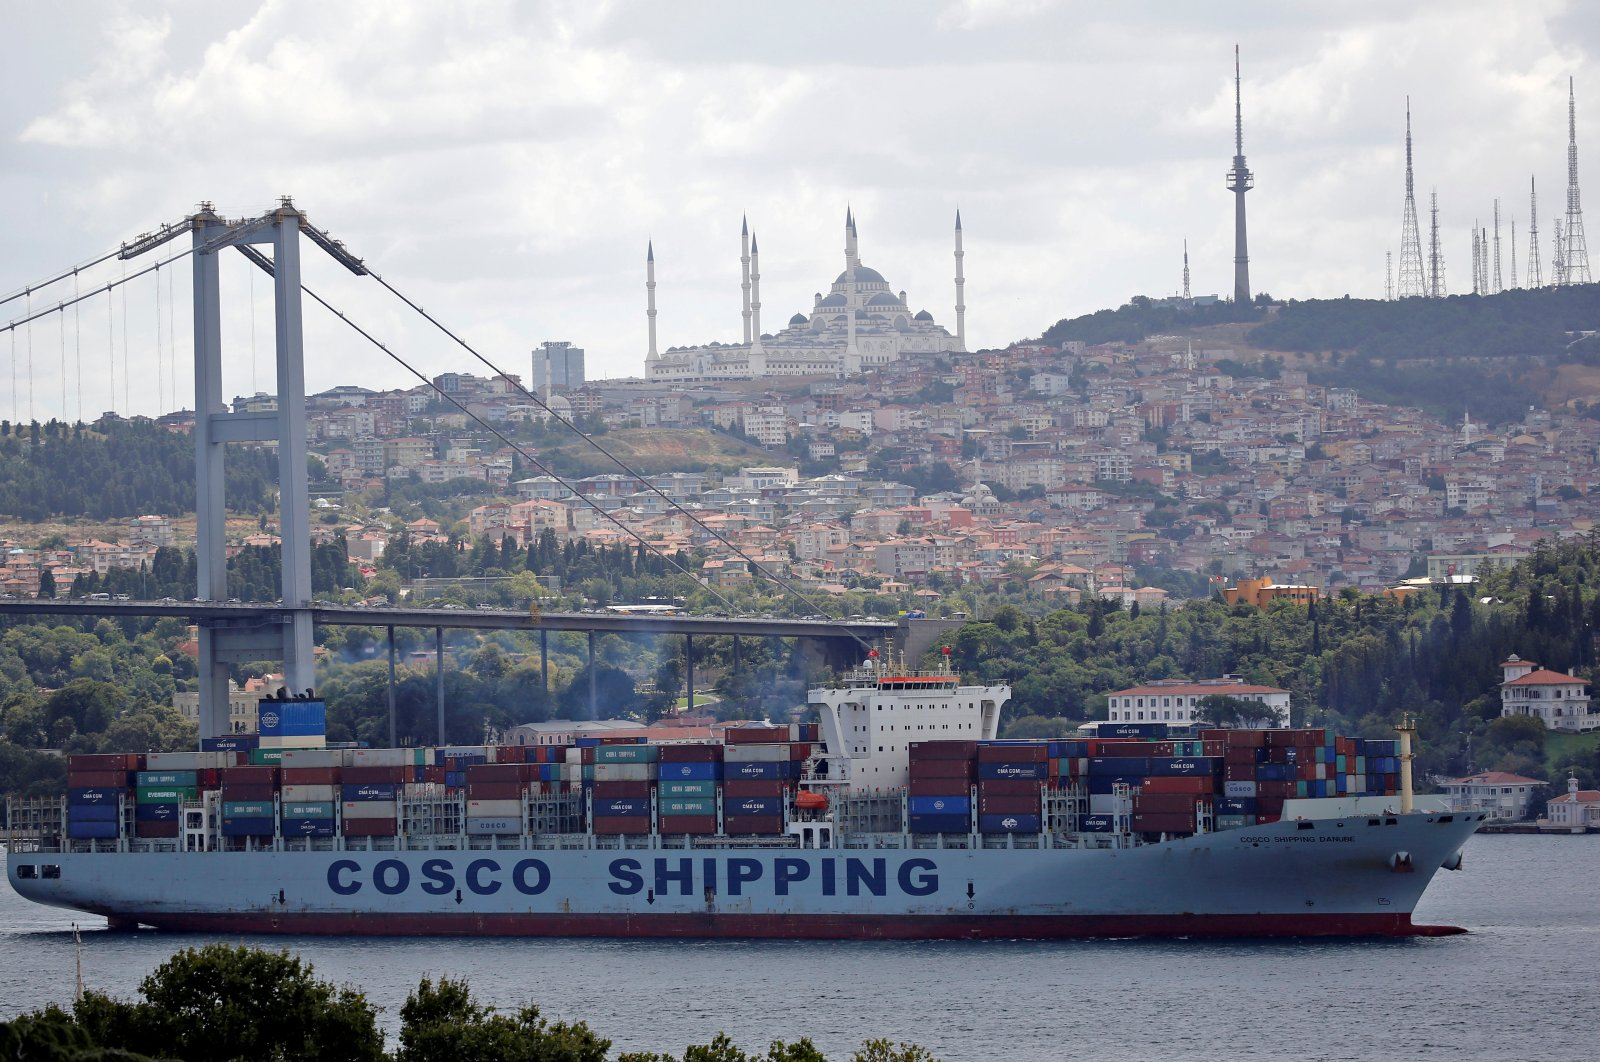 The Cosco Shipping Danube, a container ship belonging to the China Ocean Shipping Company (COSCO), sails on the Bosporus, on its way to the Mediterranean Sea, in Istanbul, Turkey, Aug. 11, 2018. (Reuters Photo)